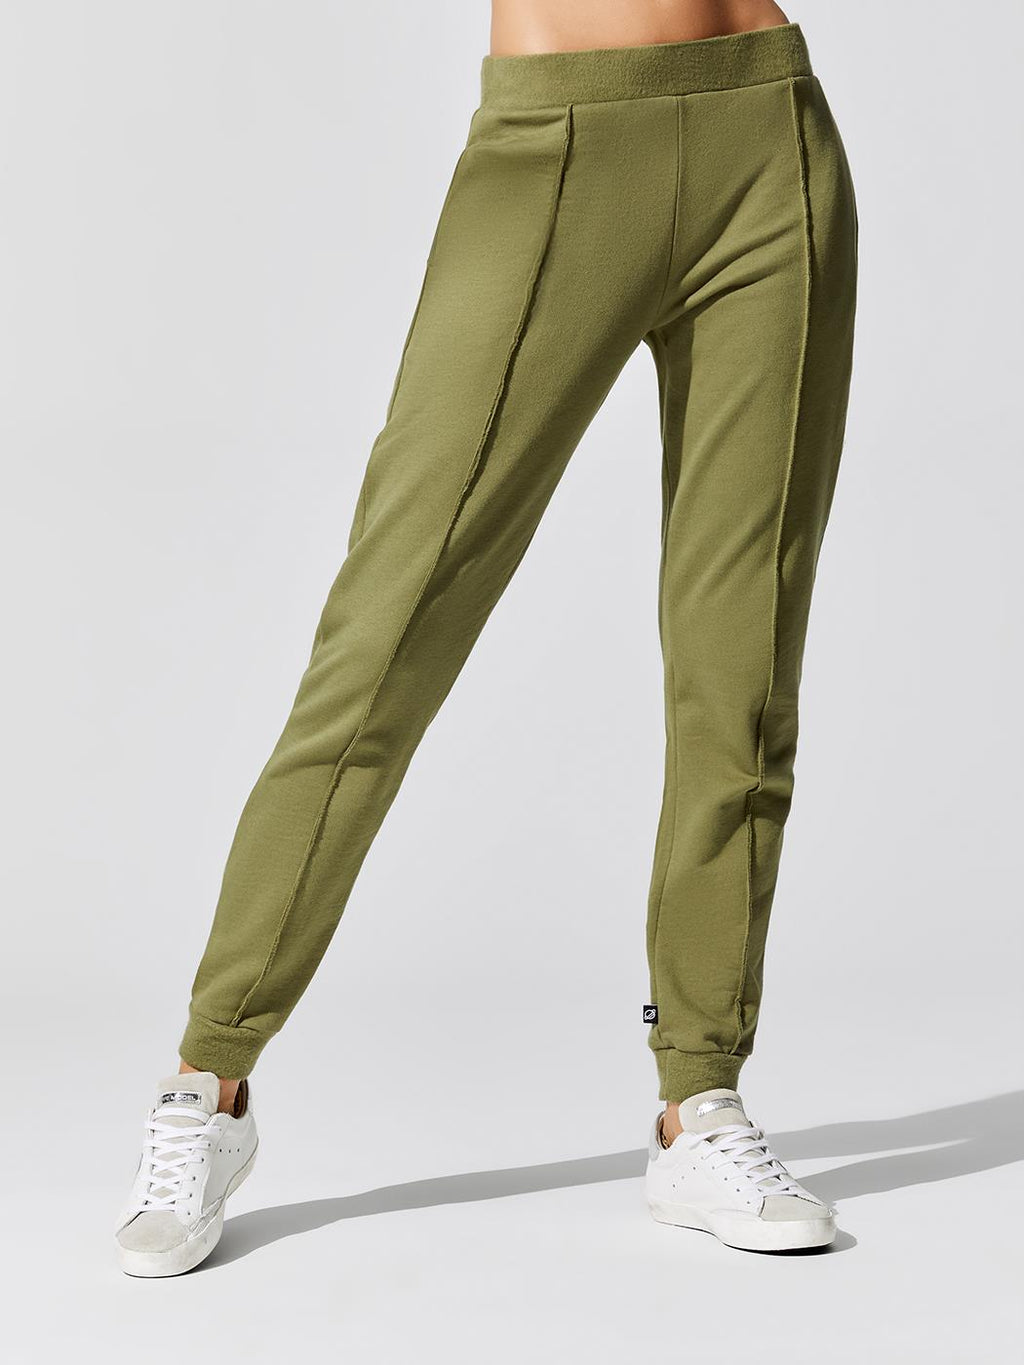 Terez Women's Cotton Fleece Jogger